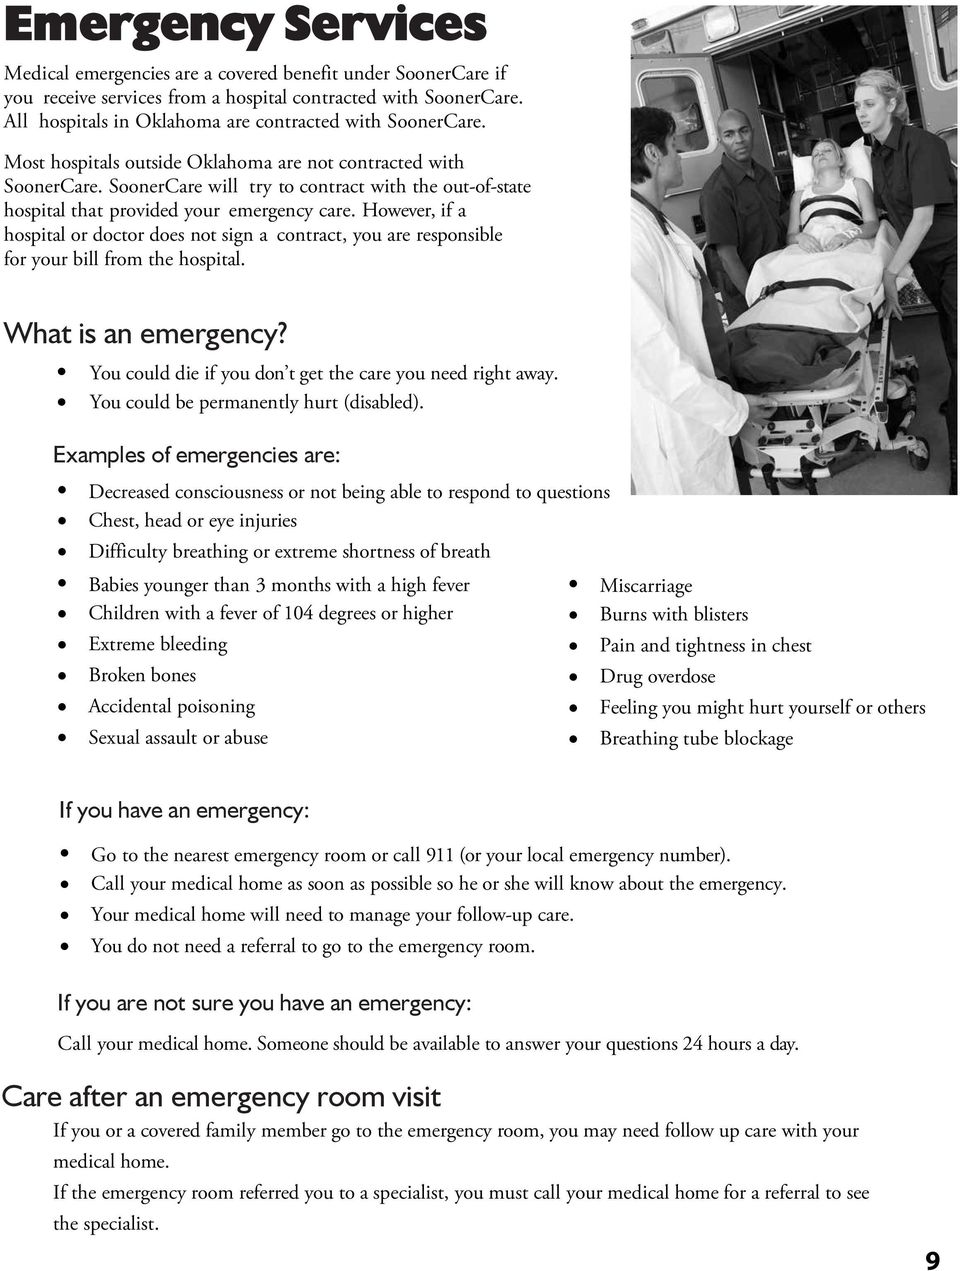 SoonerCare will try to contract with the out-of-state hospital that provided your emergency care.